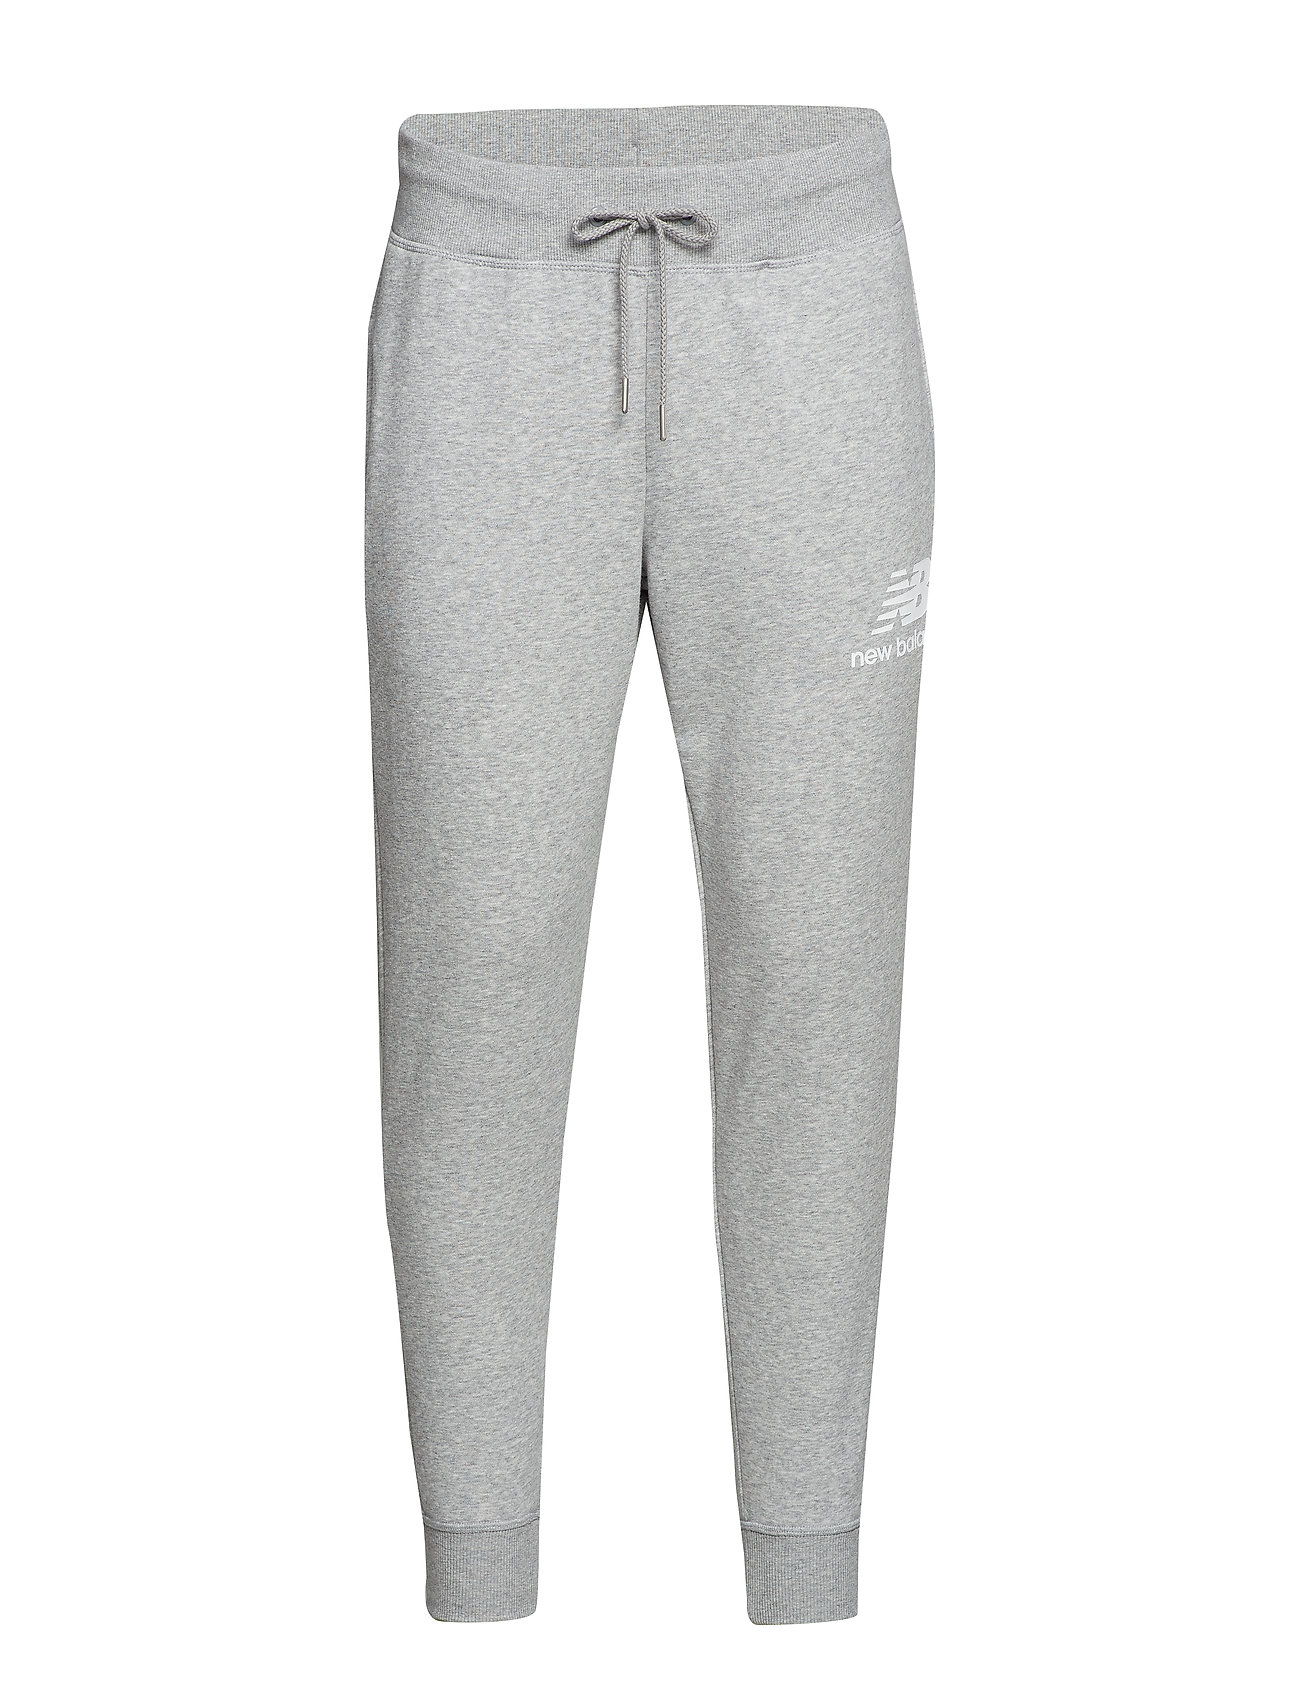 New Balance ESSENTIALS STACKED LOGO SWEATPANT - ATHLETIC GRE